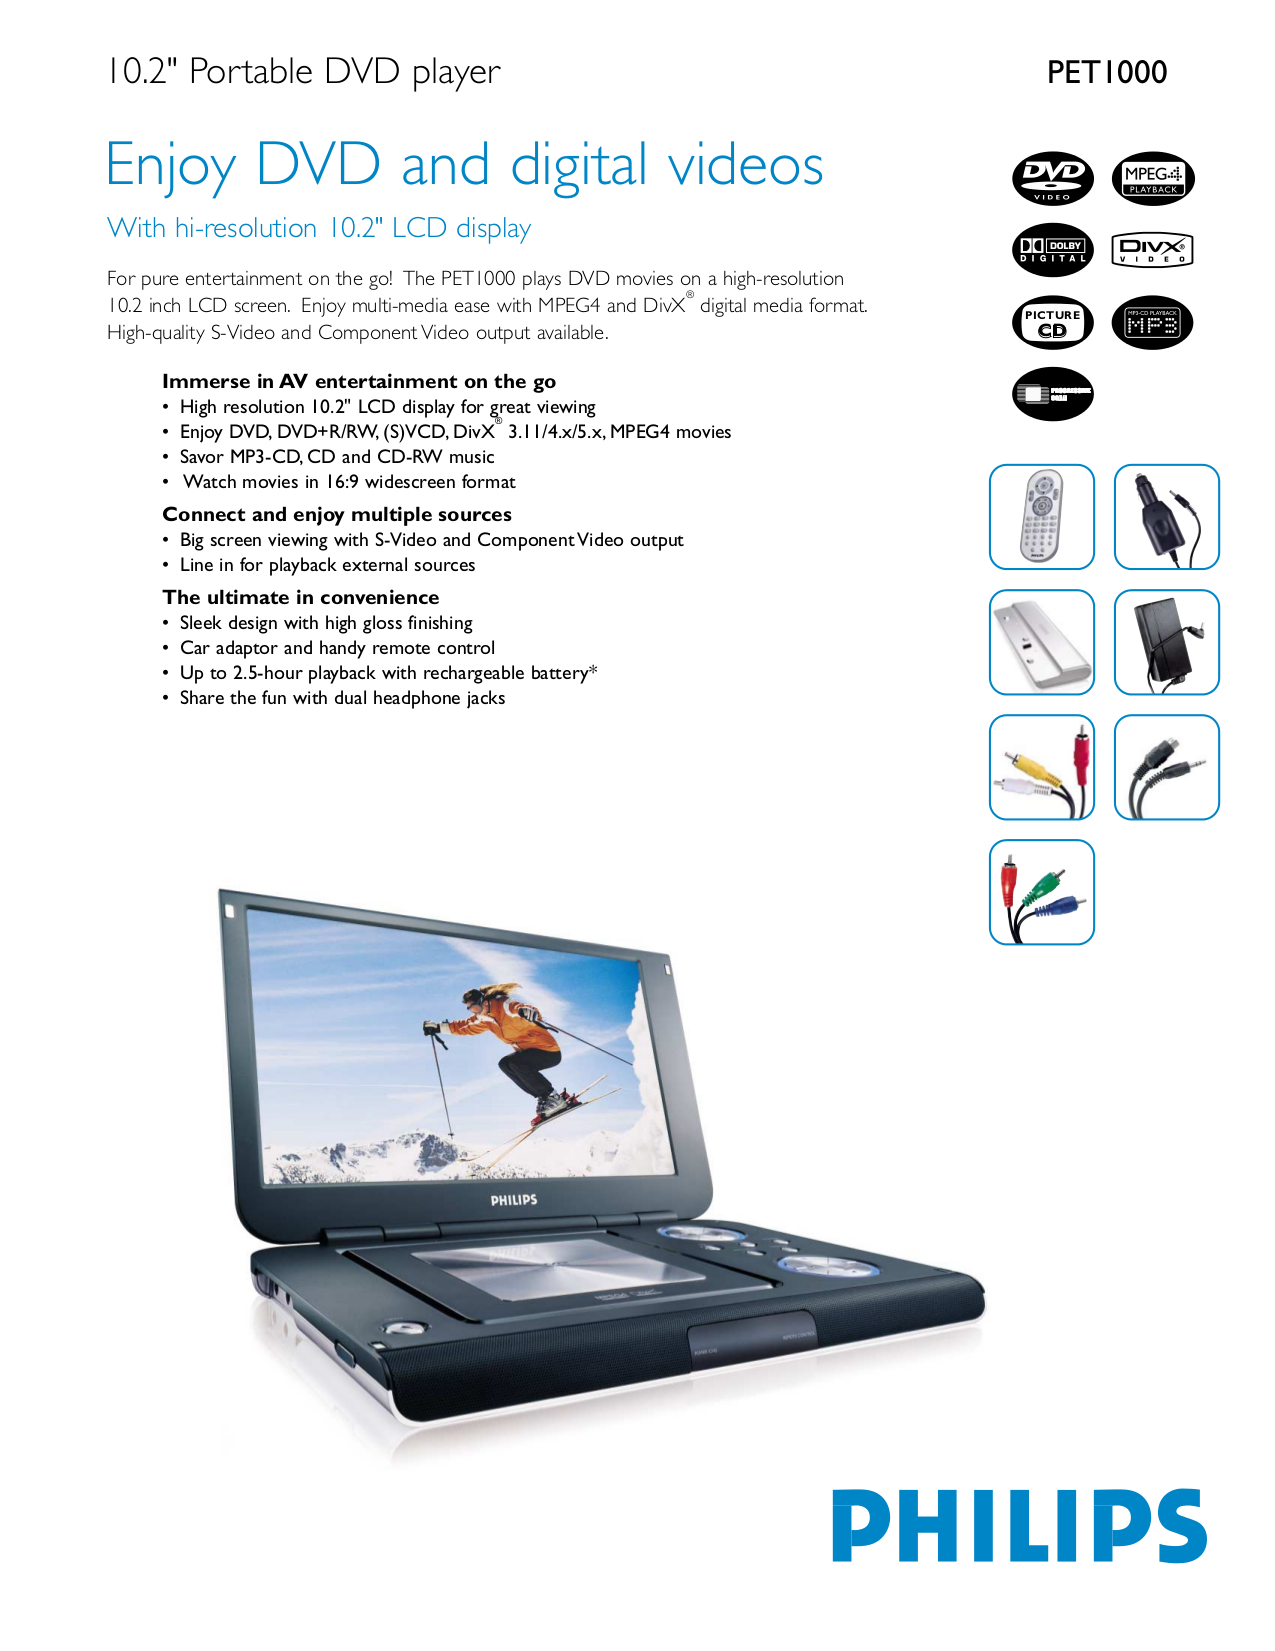 download free pdf for philips pet1000 portable dvd player manual rh umlib com Philips DVD Player Troubleshooting Philips DVD Player with USB